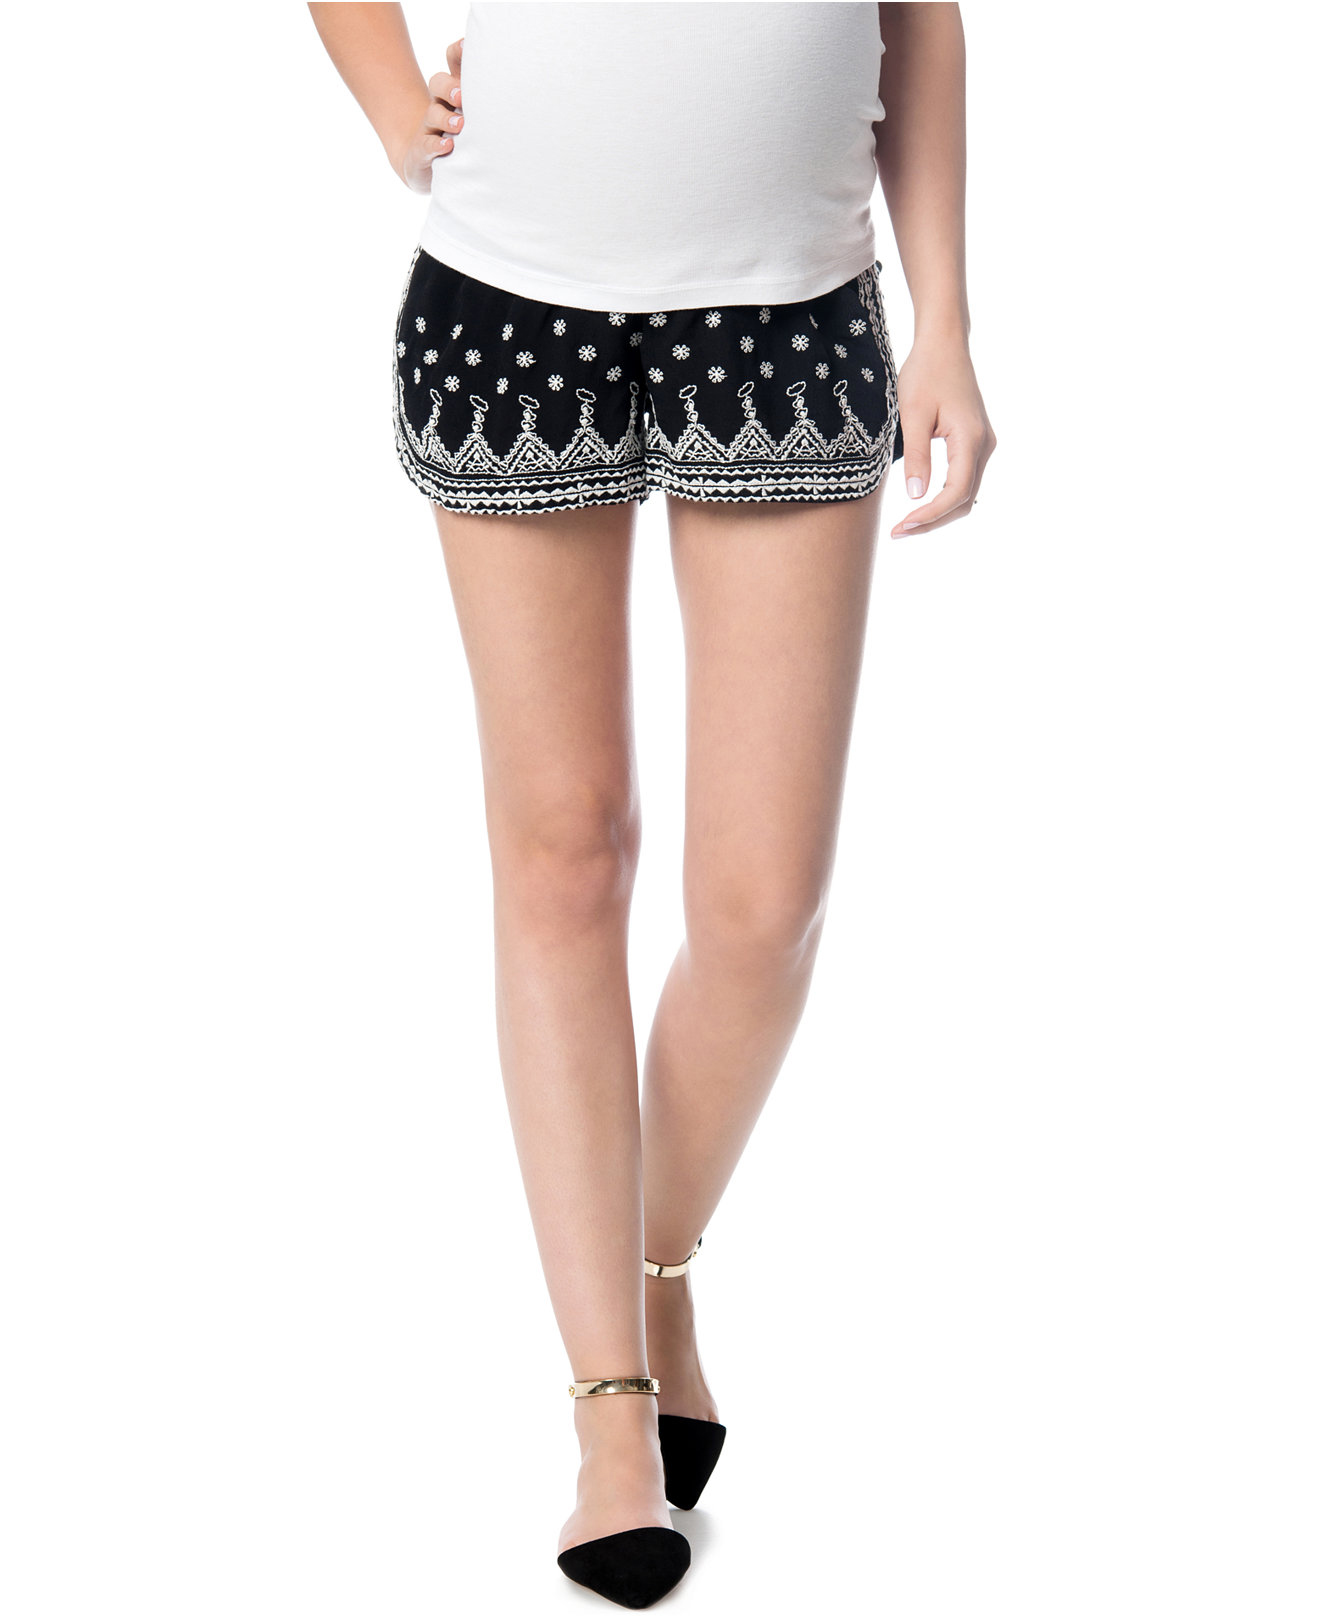 Maternity Embroidered Shorts from Macys